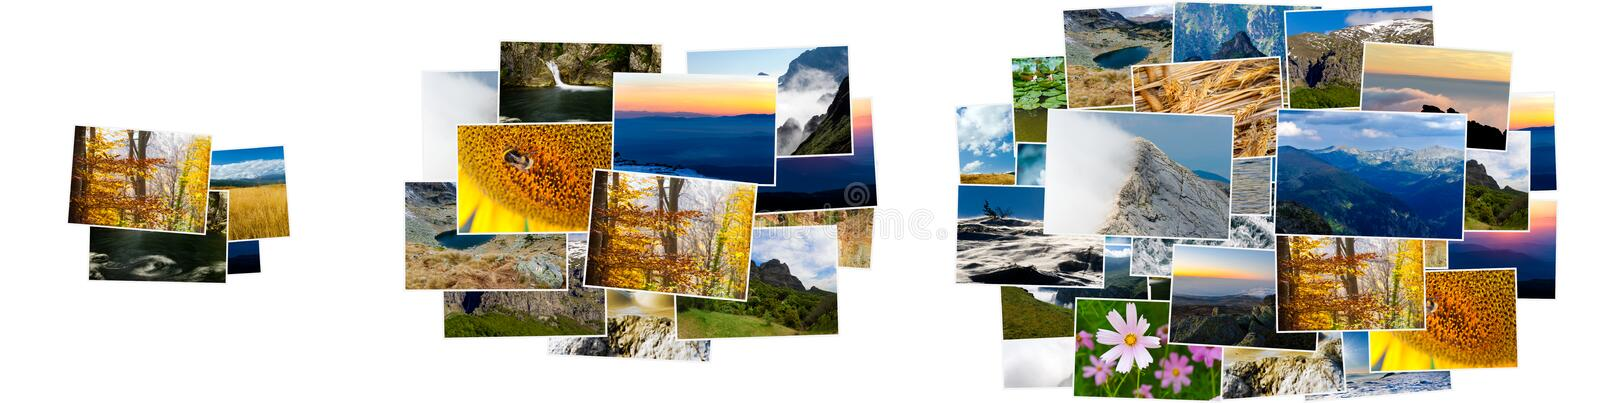 Small, medium and large piles of photos royalty free stock photo